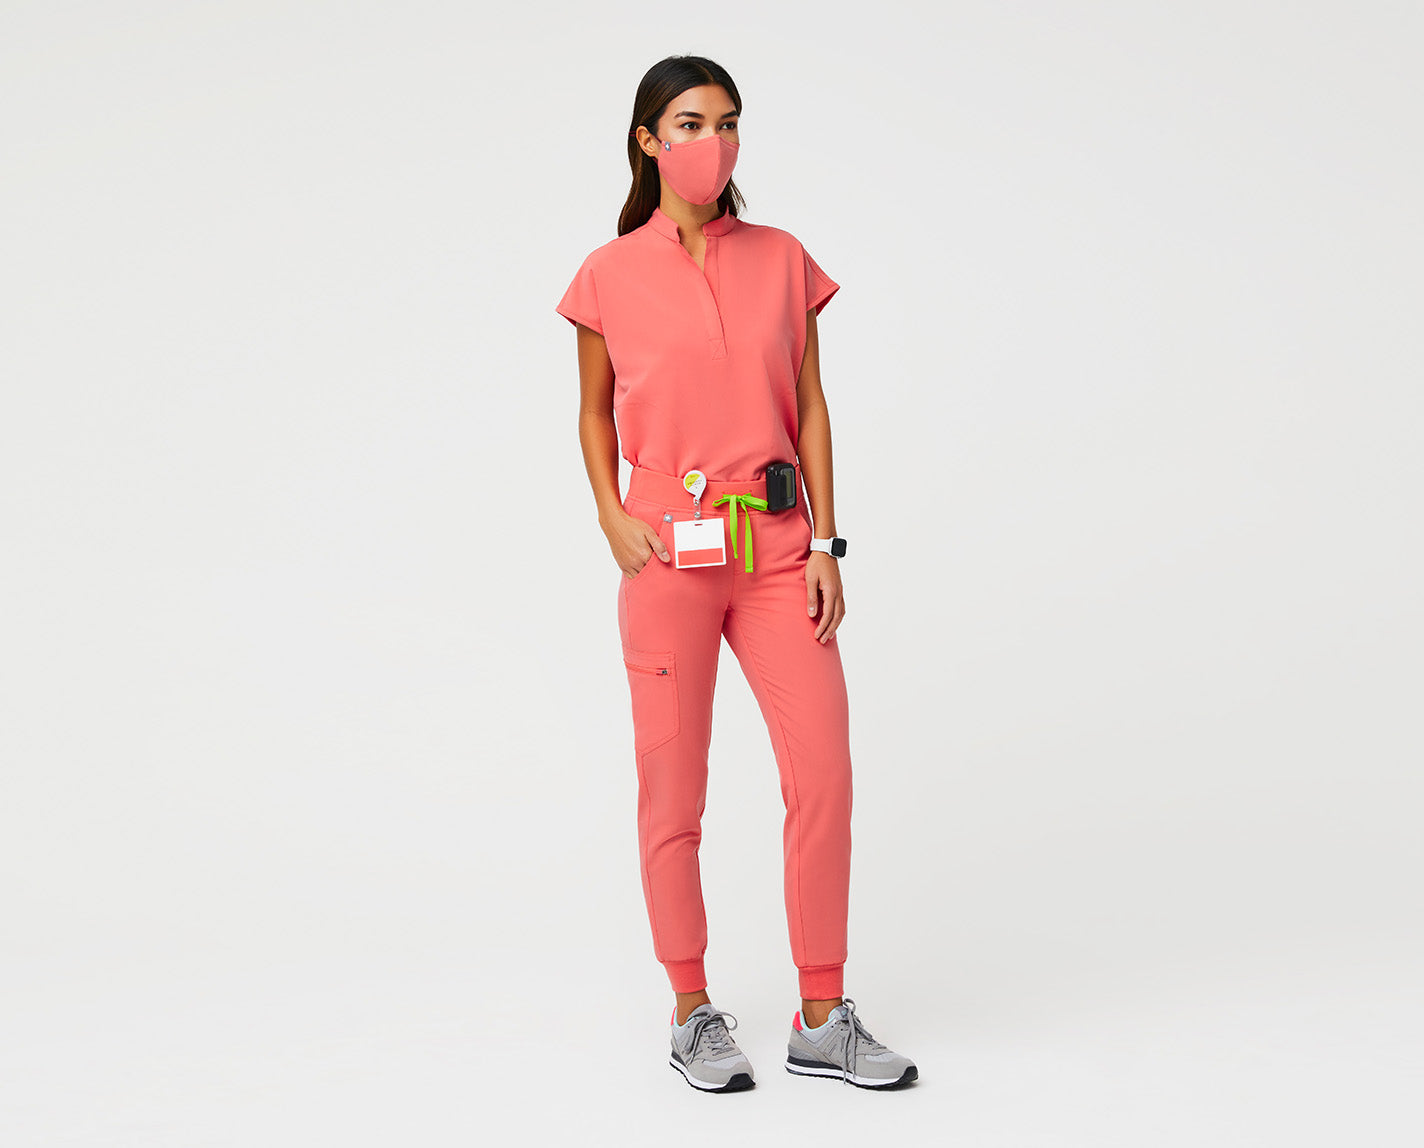 Athletically-inspired and designed to withstand the demands of your 24/7 hustle. With a slim fit, our proprietary FIONx fabric, six pockets and a super comfortable yoga knit waistband, the Zamora Jogger isn't messing around.